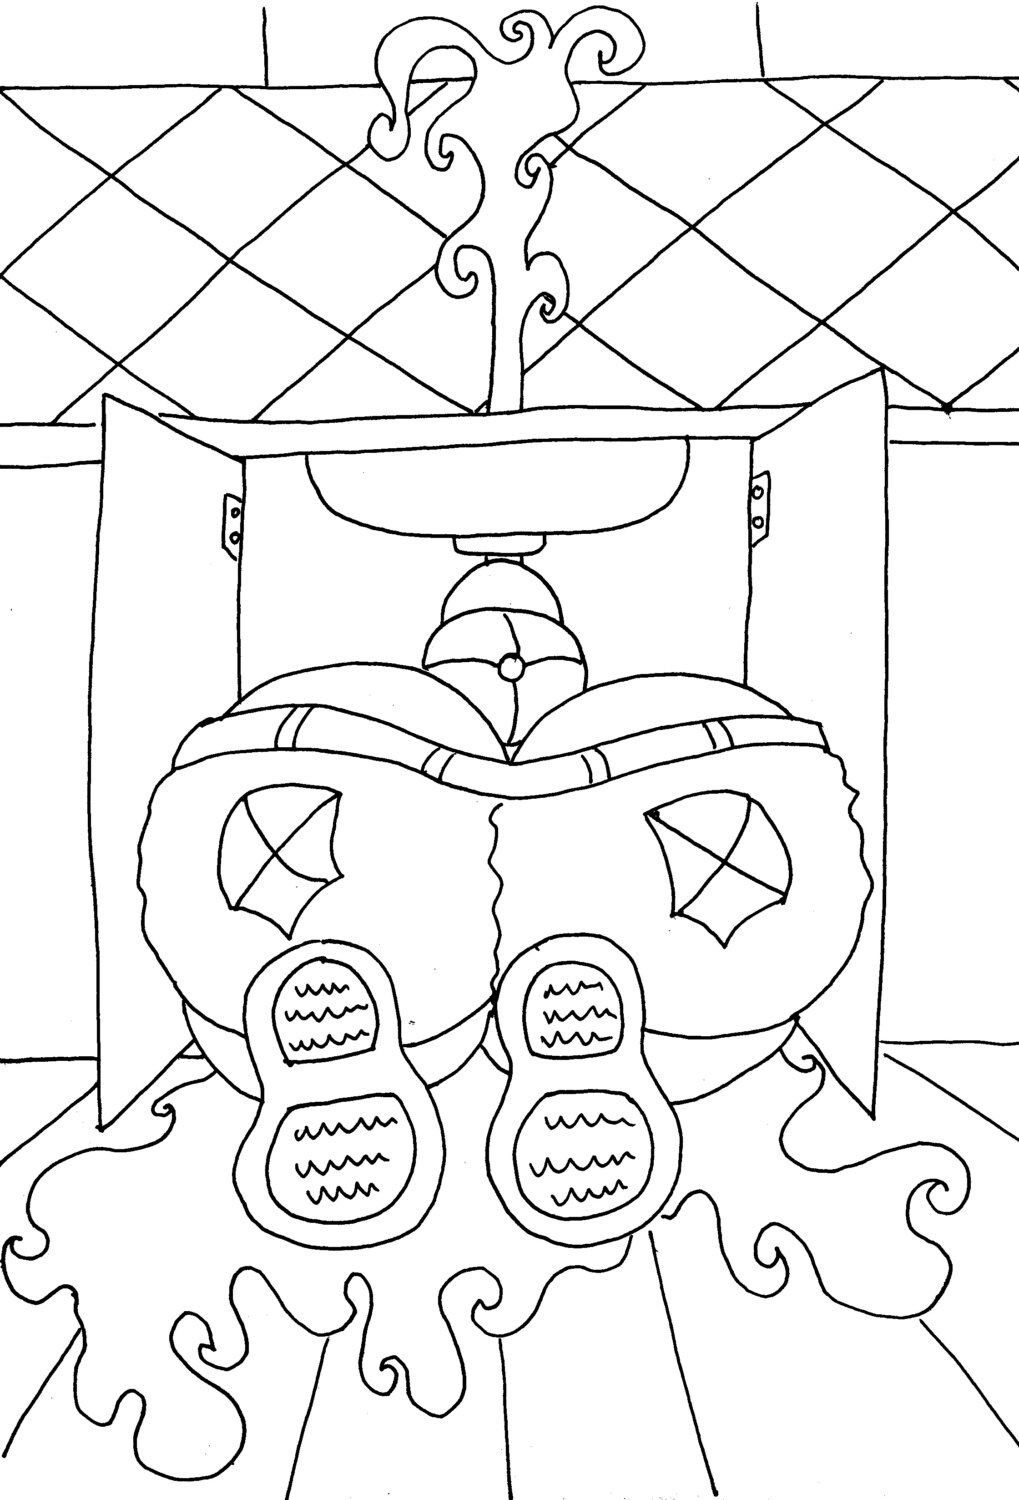 plumber funny coloring page from chubby art